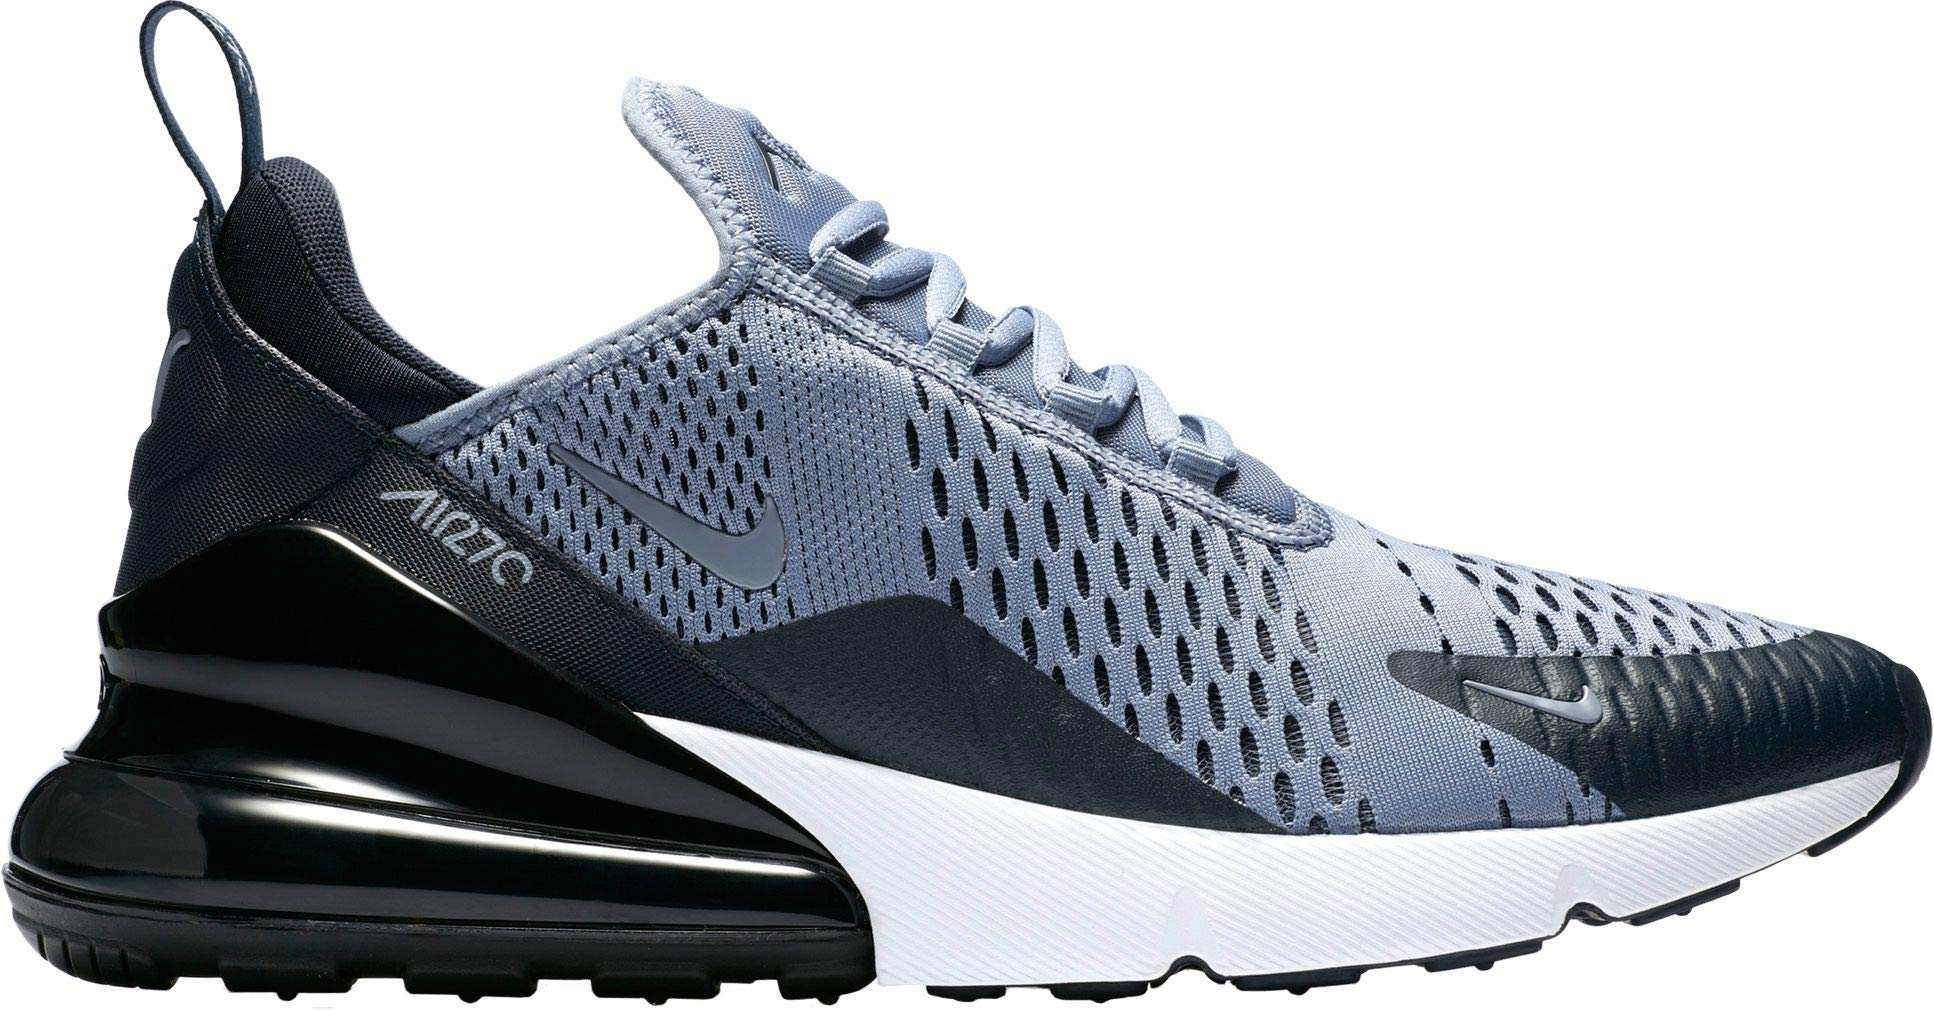 378b84ae6d97 Galleon - NIKE Men s Air Max 270 Shoes (Grey Black